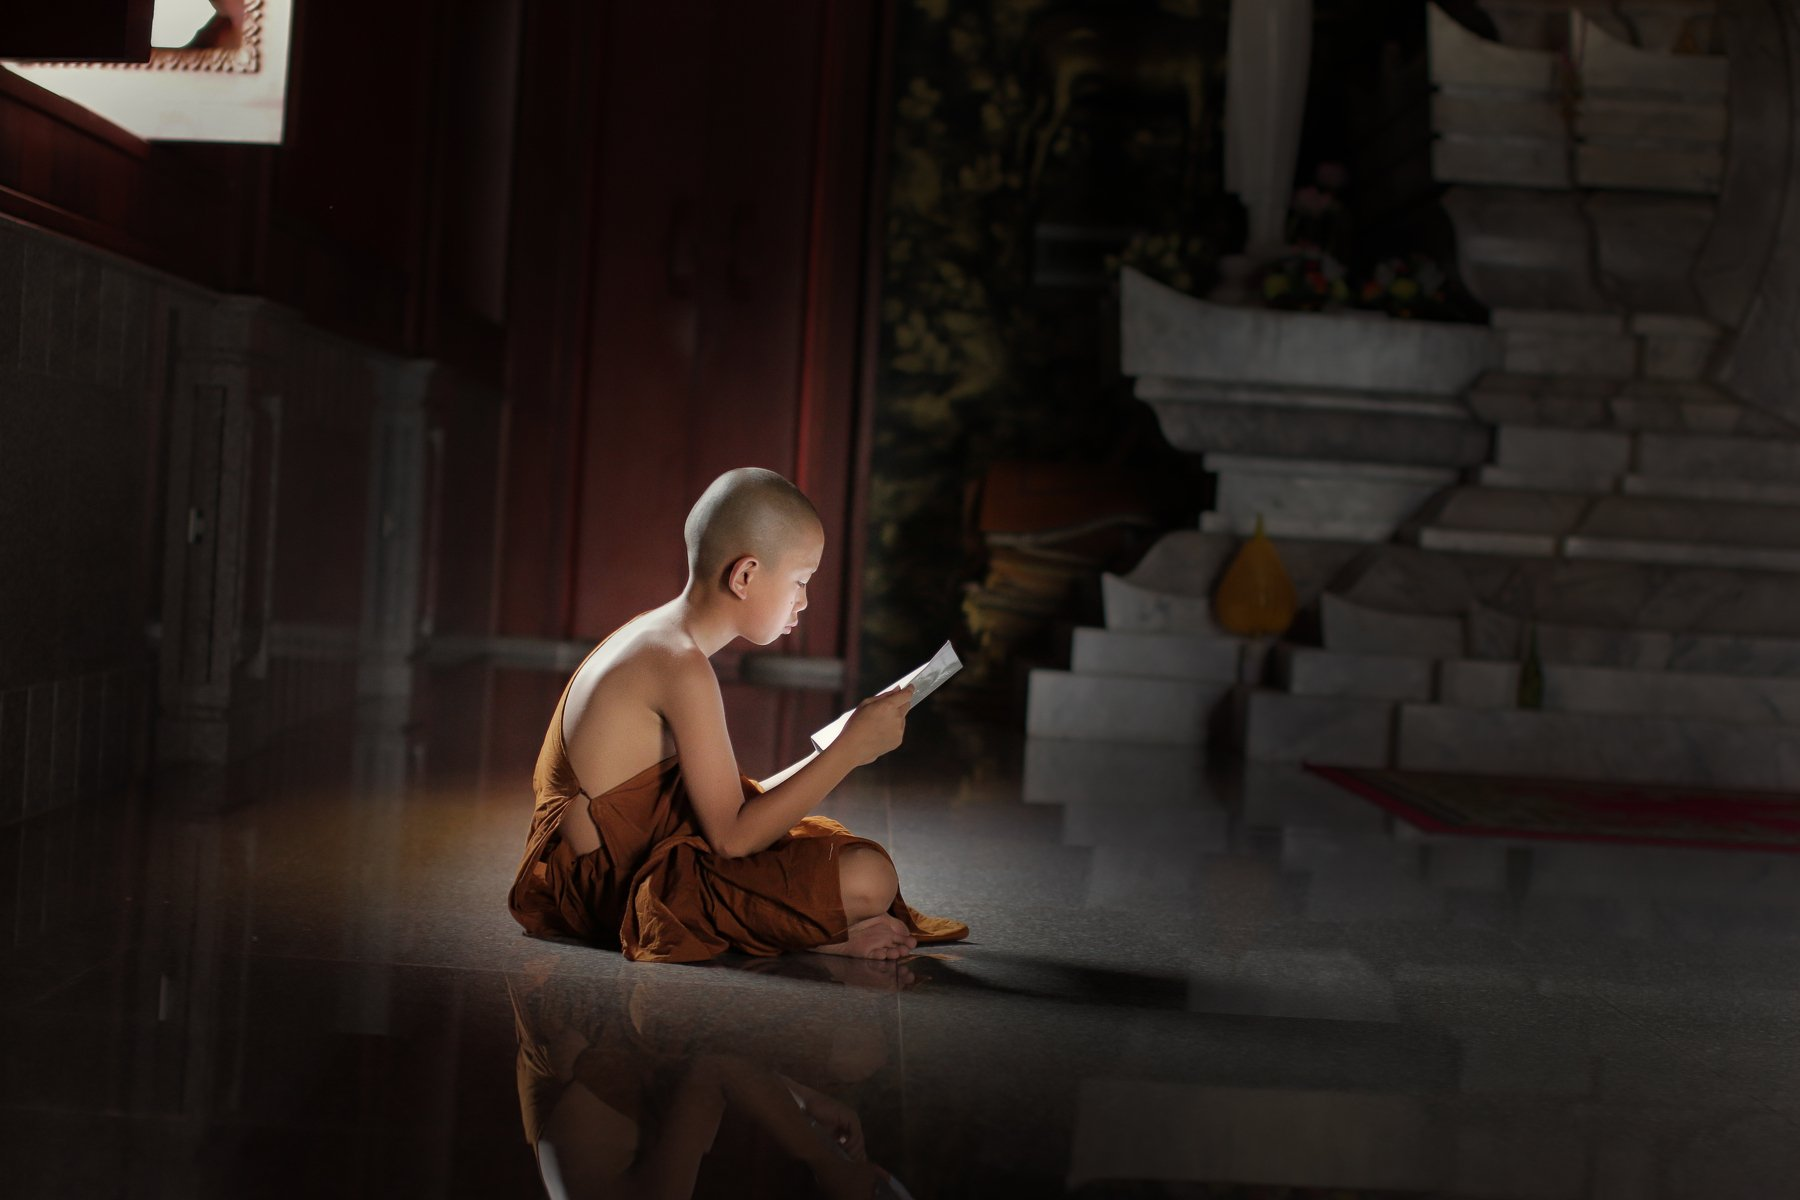 monk; buddhist; burma; robe; outdoor; tree; pilgrimage; children; two; green; red; burmese; culture; bagan; male; summer; umbrella; novice; people; ethnic; traditional; lesson; teaching; buddhism; asia; faith; belief; religious; learning; small; young; tr, Visoot Uthairam